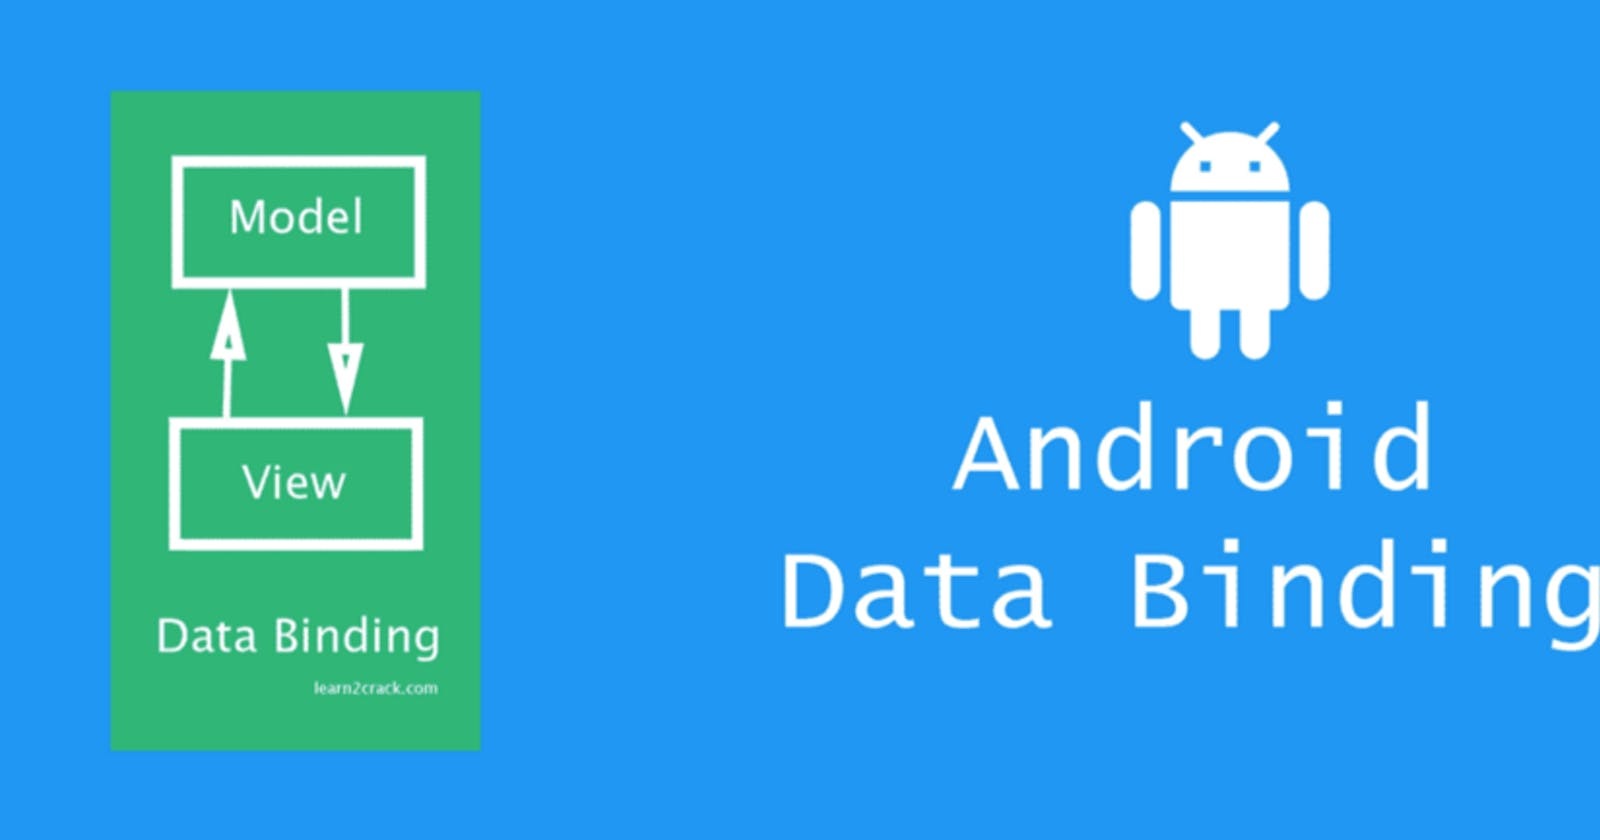 How to use DataBinding together with a RecyclerView in Android